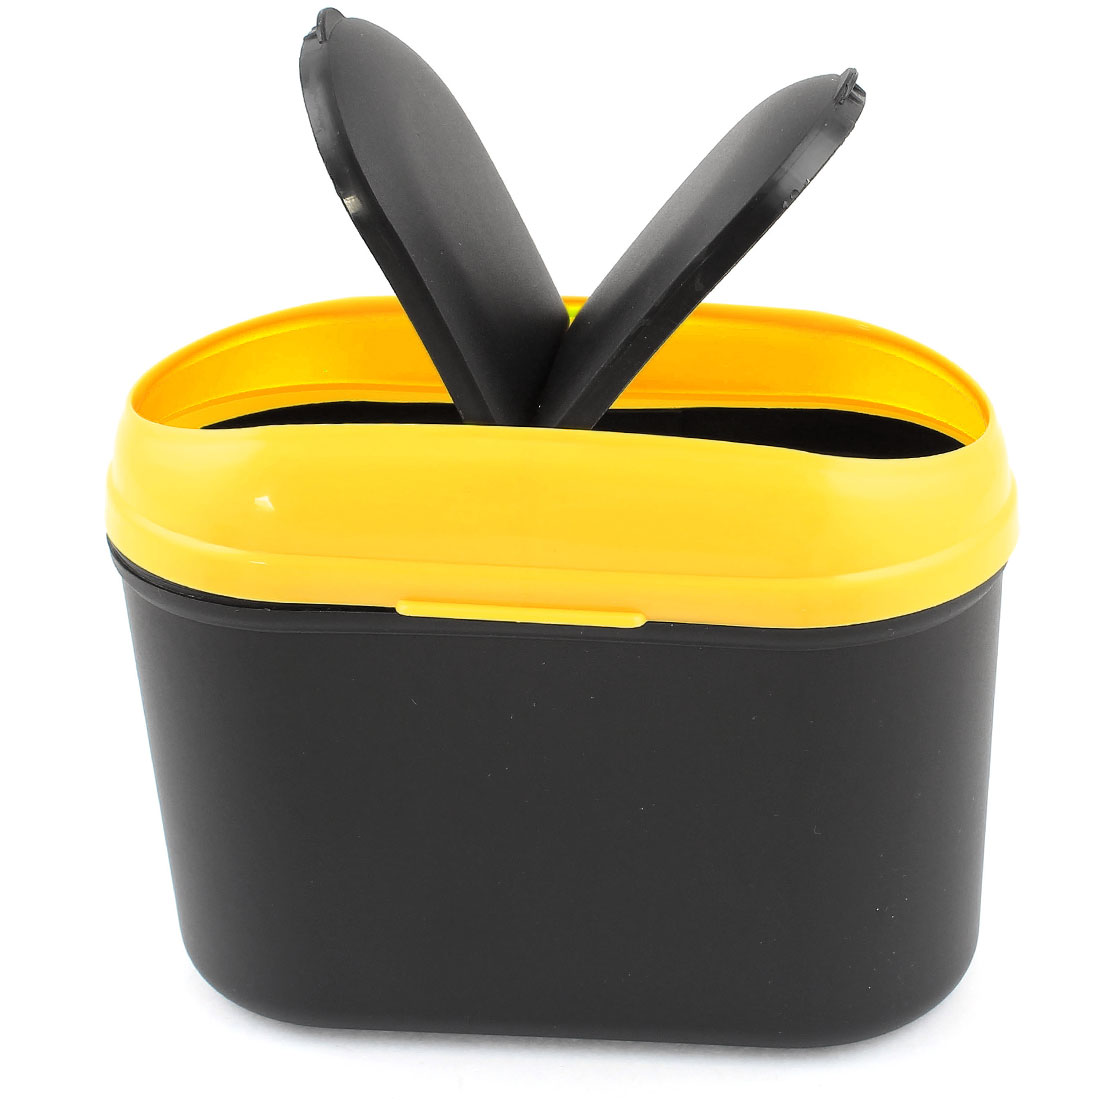 Car Auto Trash Dust Bin Litter Can Rubbish Container Black Yellow